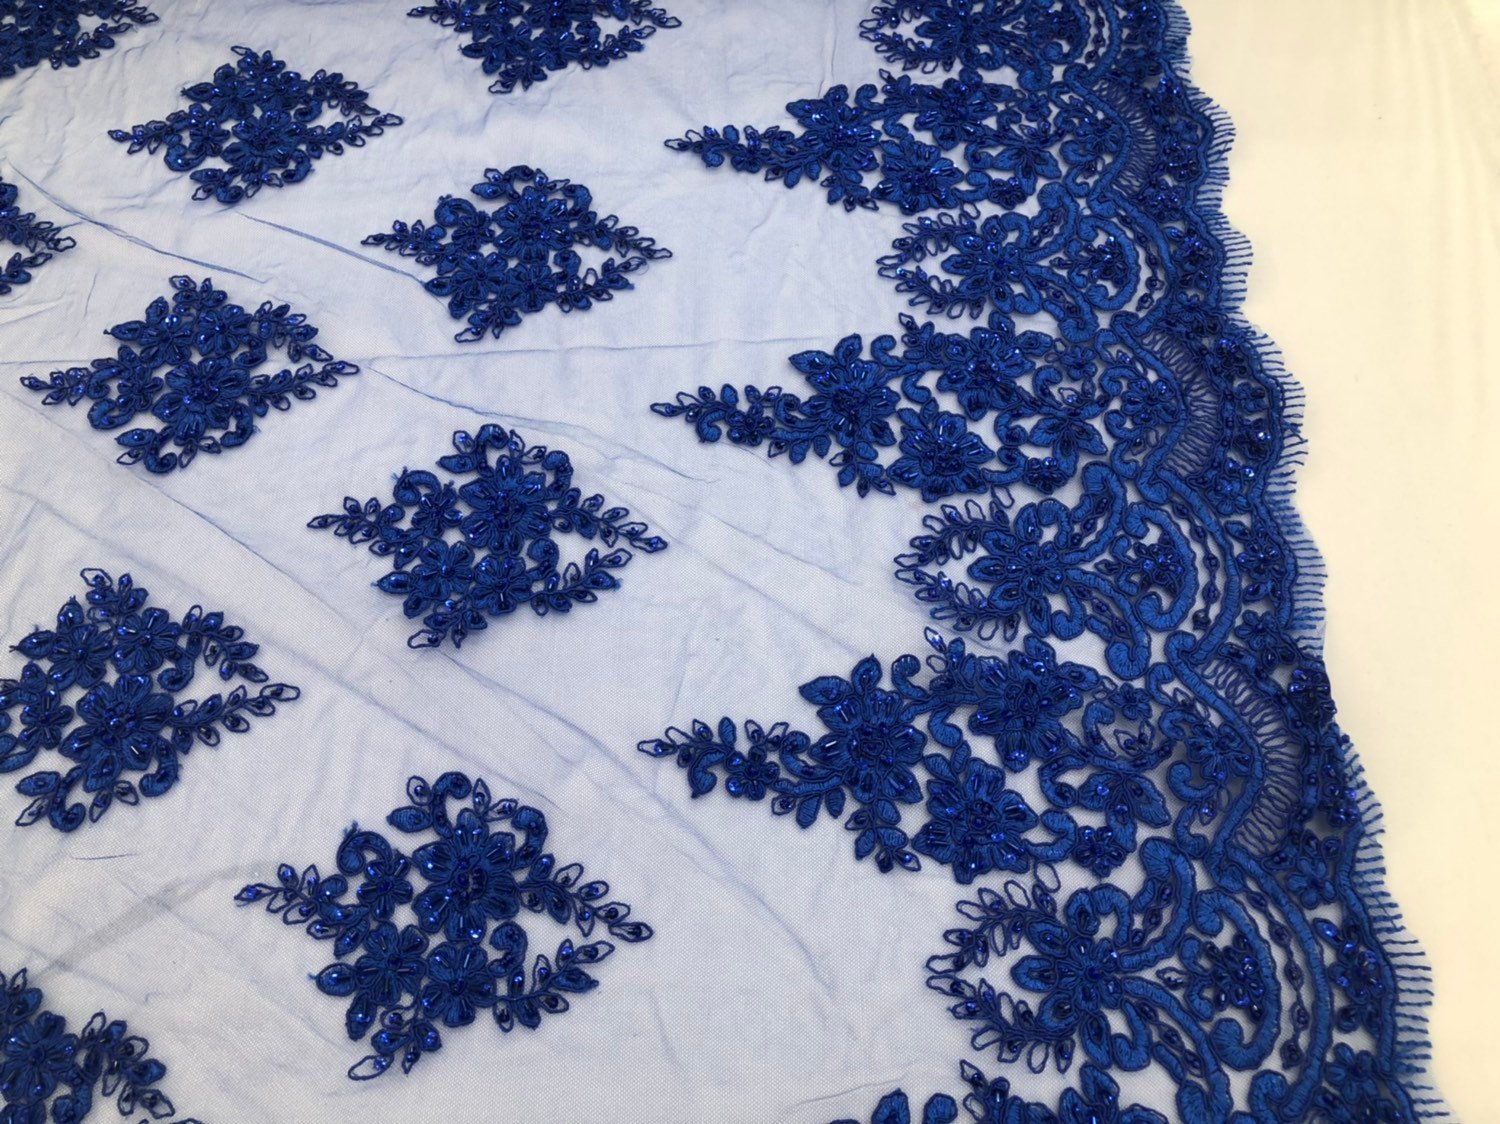 Royal Blue Beaded Fabric, Lace Fabric By The Yard - Embroider Beaded On A Mesh For Bridal Veil Flower-Floral Mesh Dress Top Wedding Decor